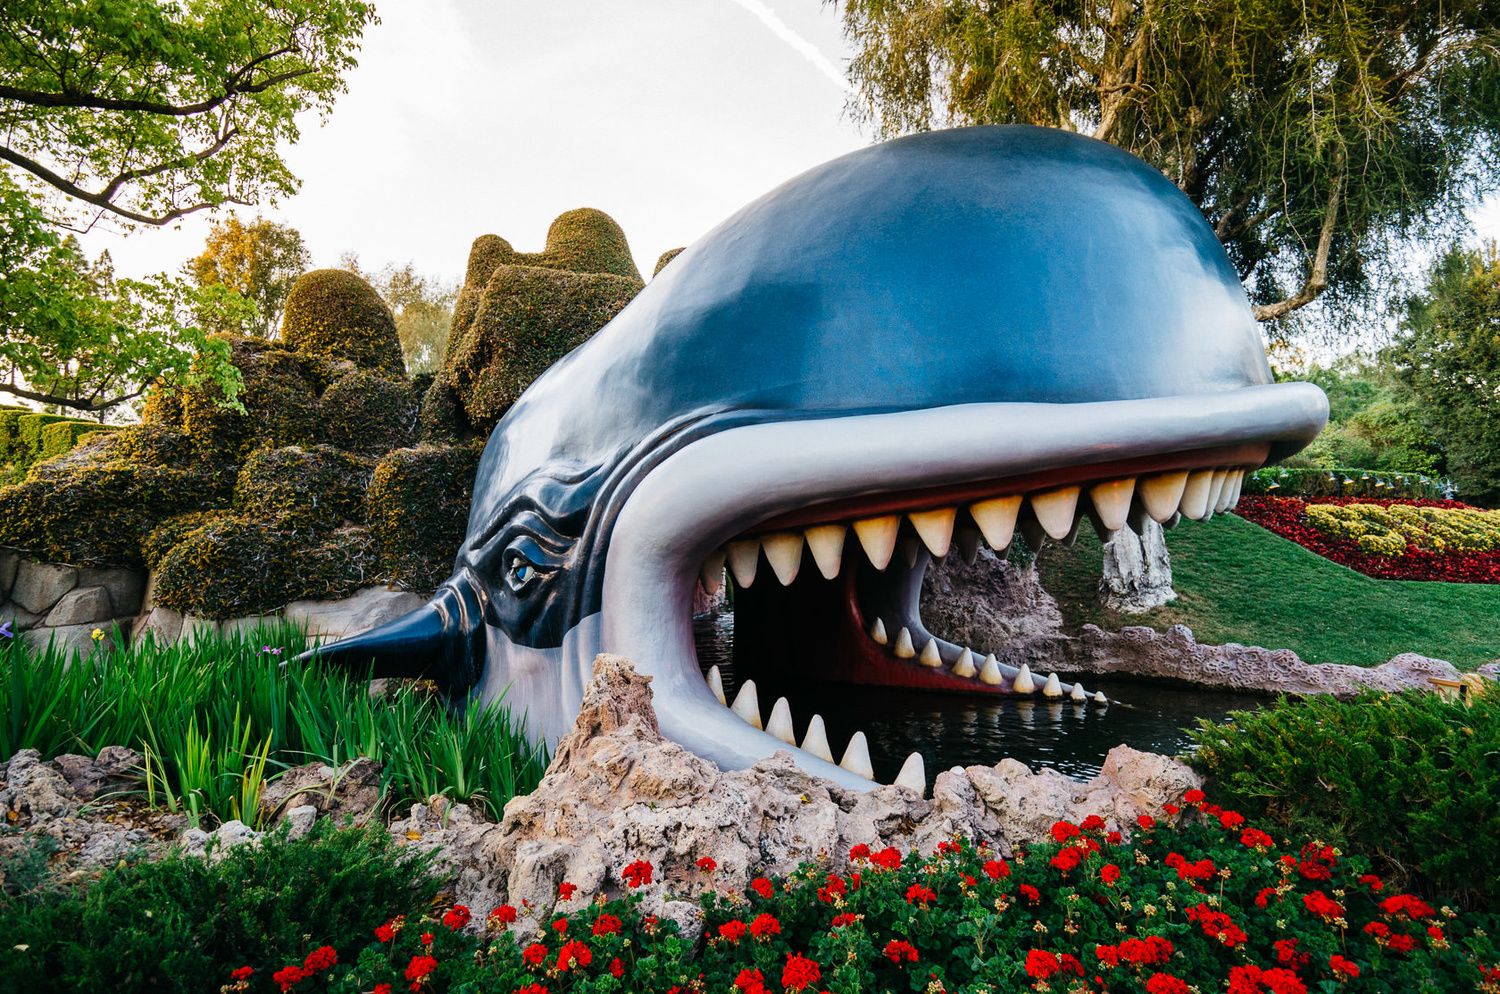 Storybook Land Canal Boats' Monstro the Whale from Pinocchio